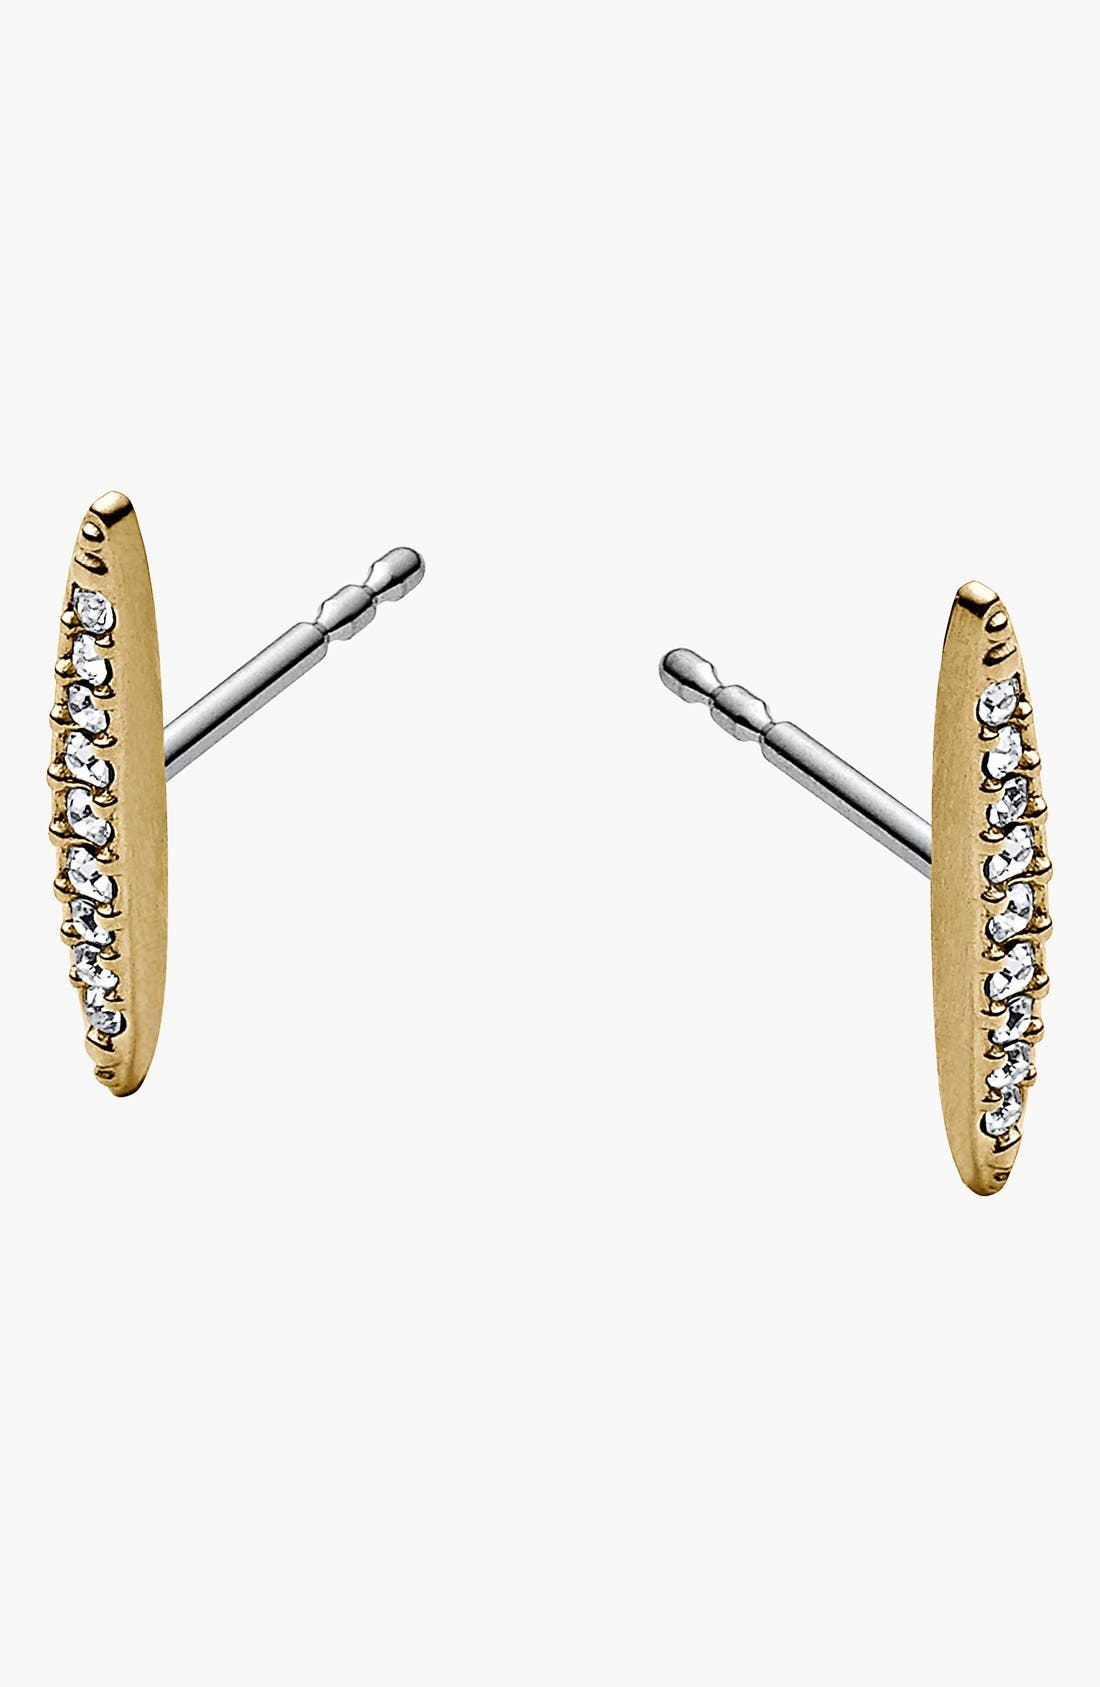 Main Image - Michael Kors 'Matchstick' Pavé Stud Earrings